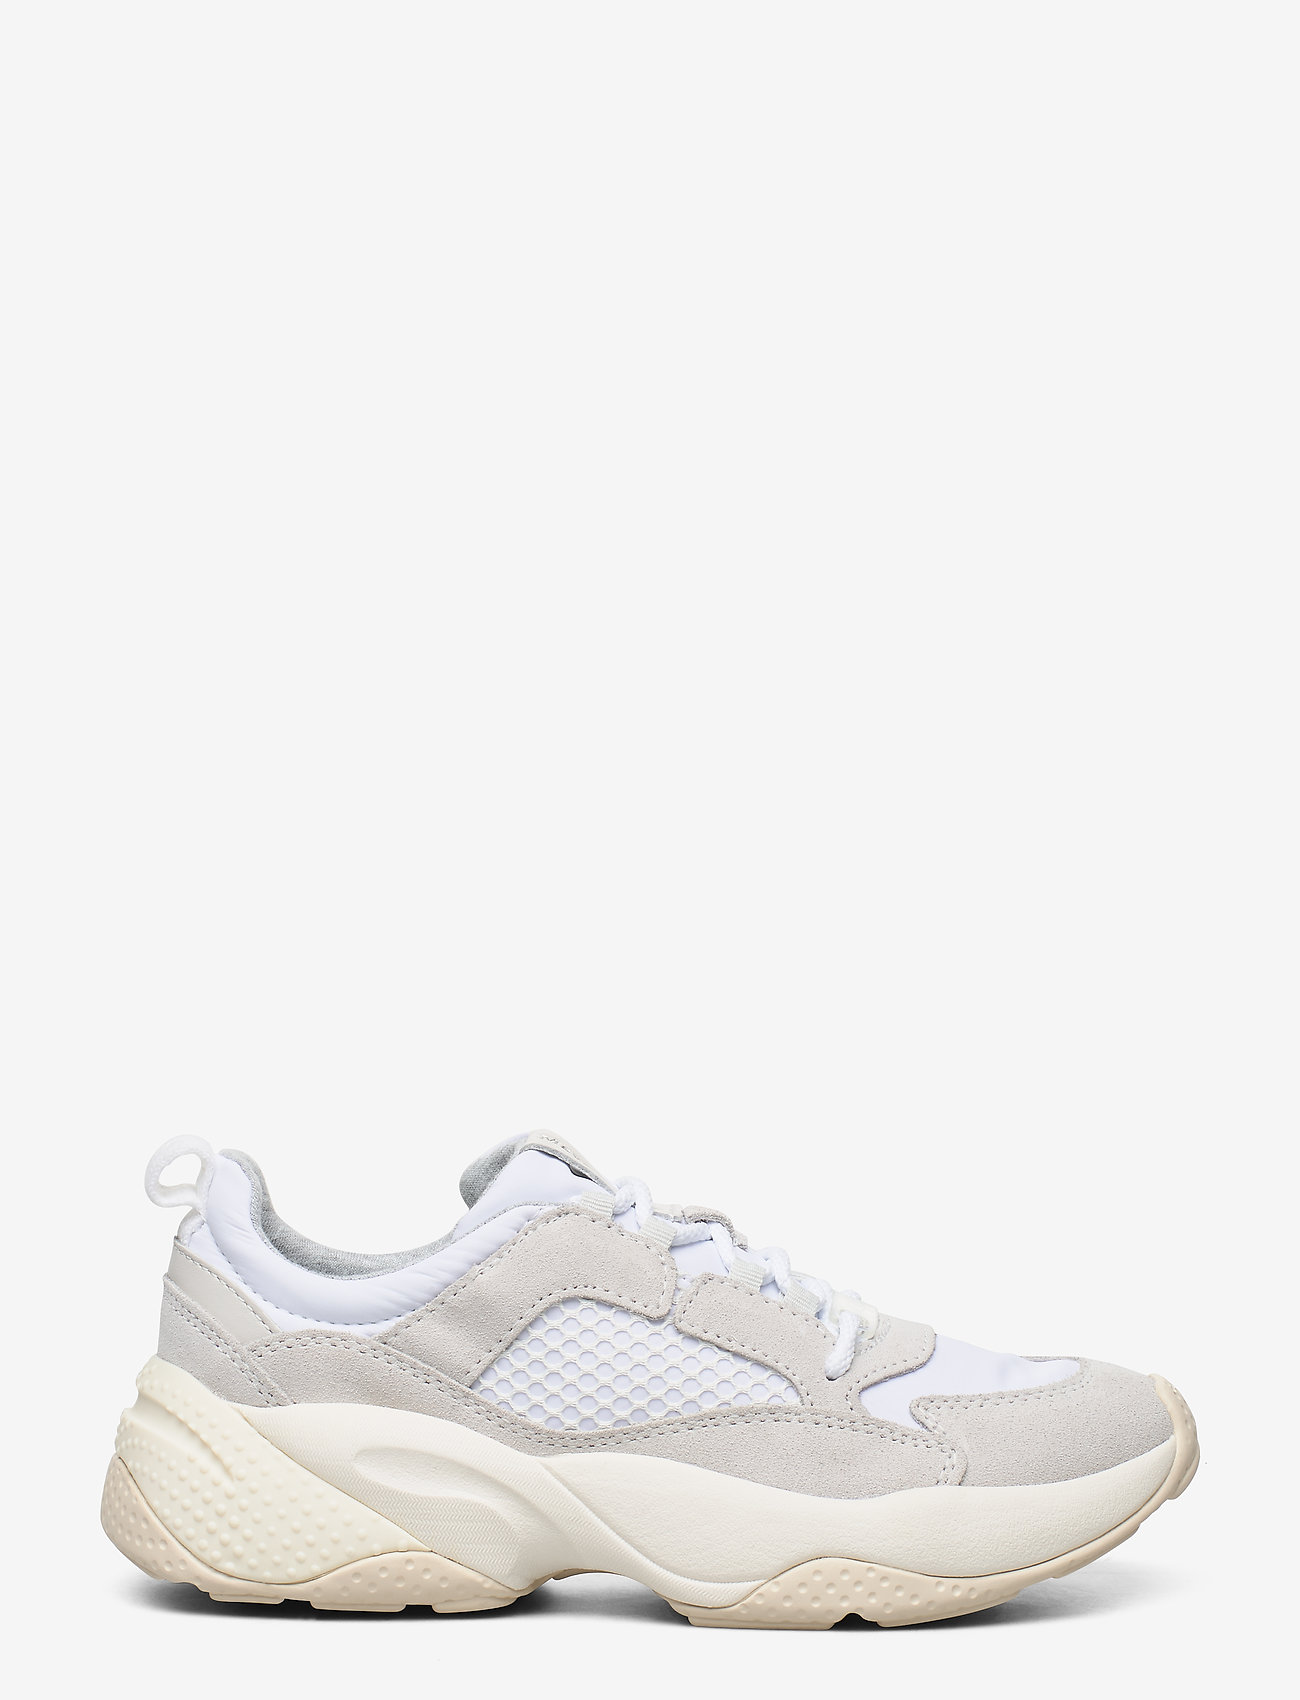 Marc O'Polo Footwear - Cruz 11 - chunky sneakers - white/offwhite - 1